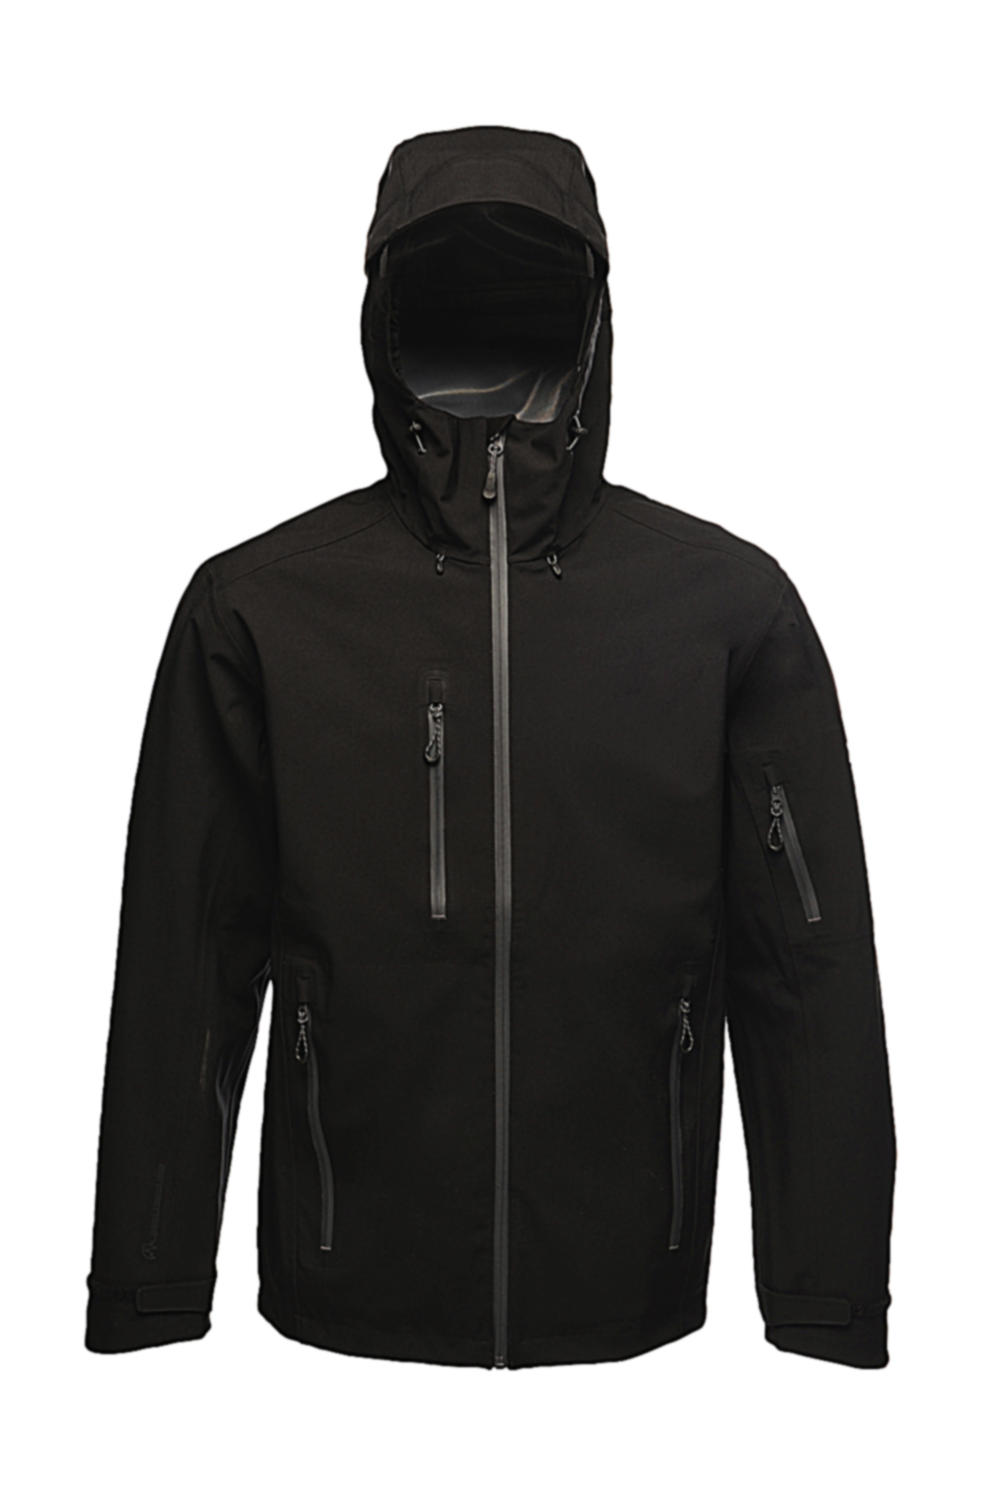 X-Pro Triode Waterproof Shell Jacket